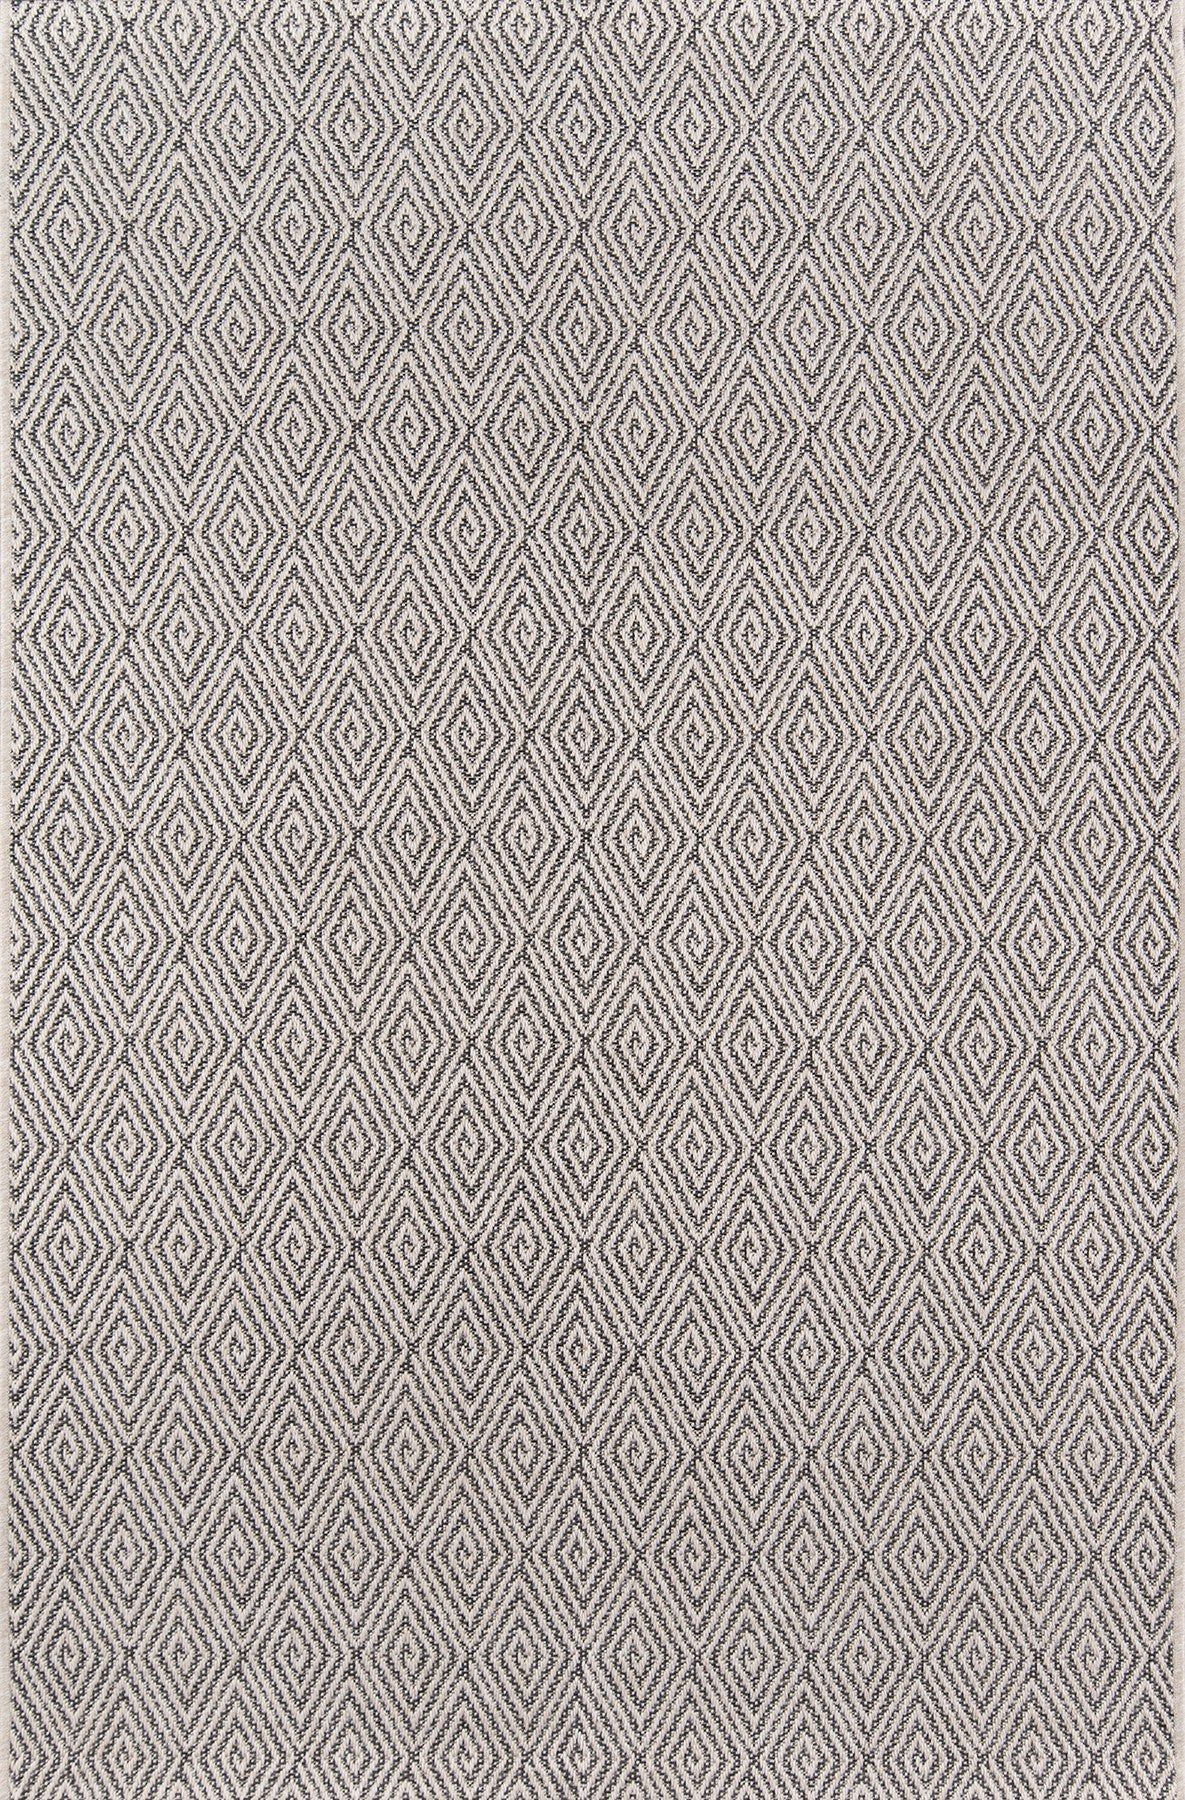 Momeni Downeast DOW-6 Charcoal Area Rug by Erin Gates main image